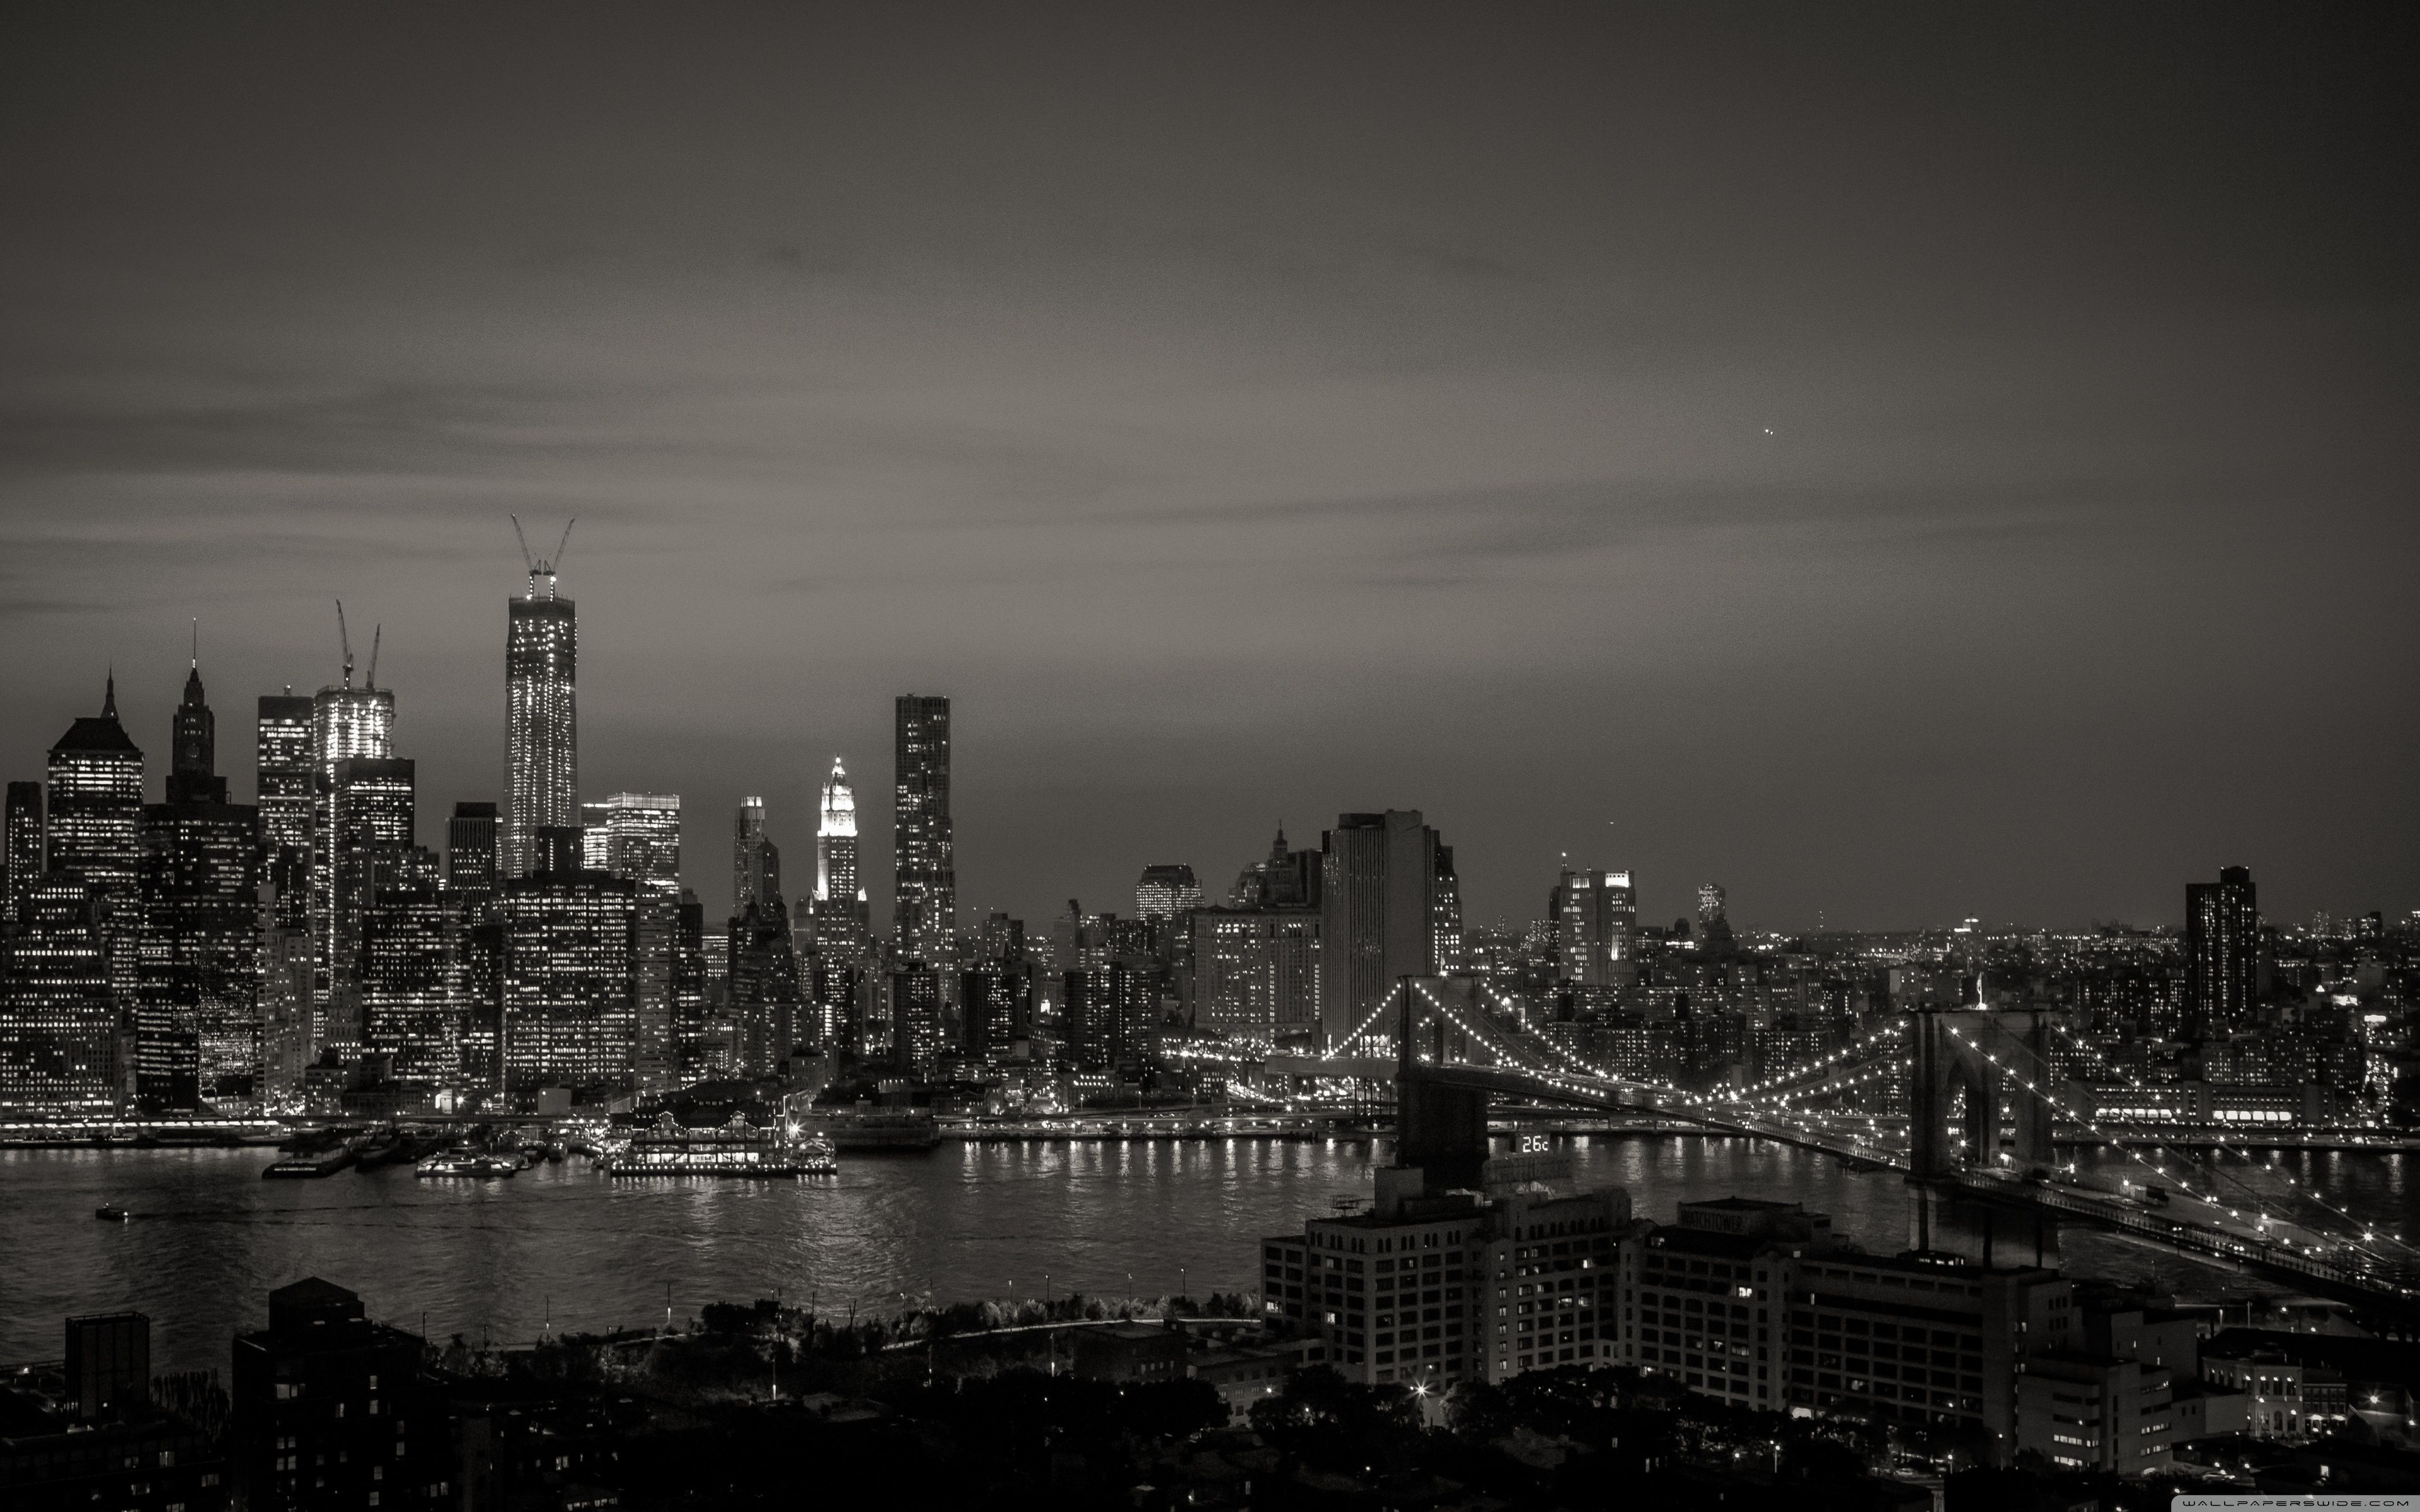 Black And White City Wallpapers Top Free Black And White City Backgrounds Wa Laptop Wallpaper Desktop Wallpapers New York Wallpaper Desktop Wallpaper Black